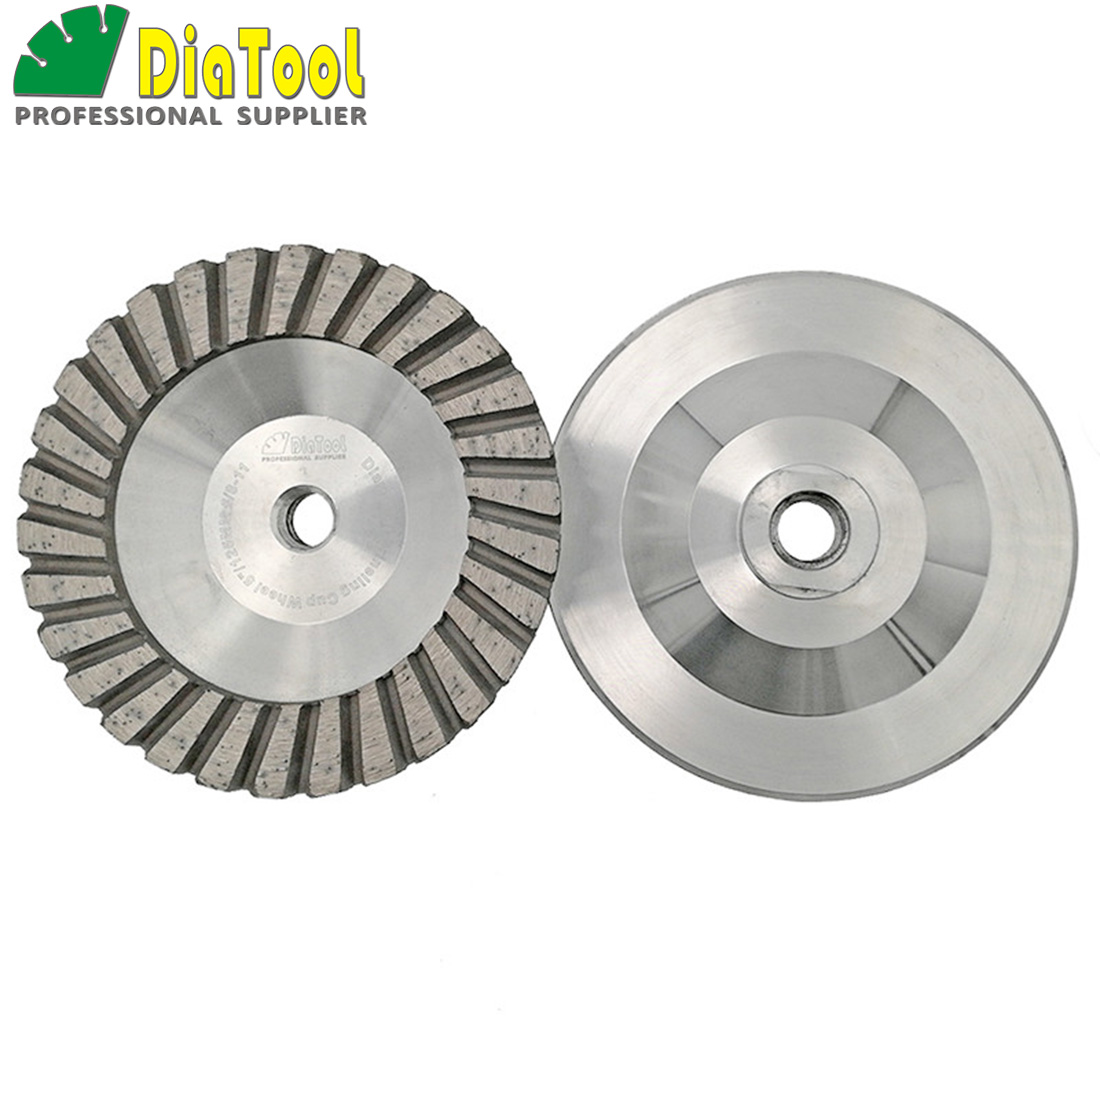 DIATOOL 2PK 5inch 125mm #30 Aluminum Based Diamond Grinding Cup Wheel 5/8-11 thread Grinding Discs Granite Concrete Diamond fine [m14 thread] 5 ncctec diamond aluminum matrix sintered grinding disc 125mm stone turbo grinding cup wheel free shipping